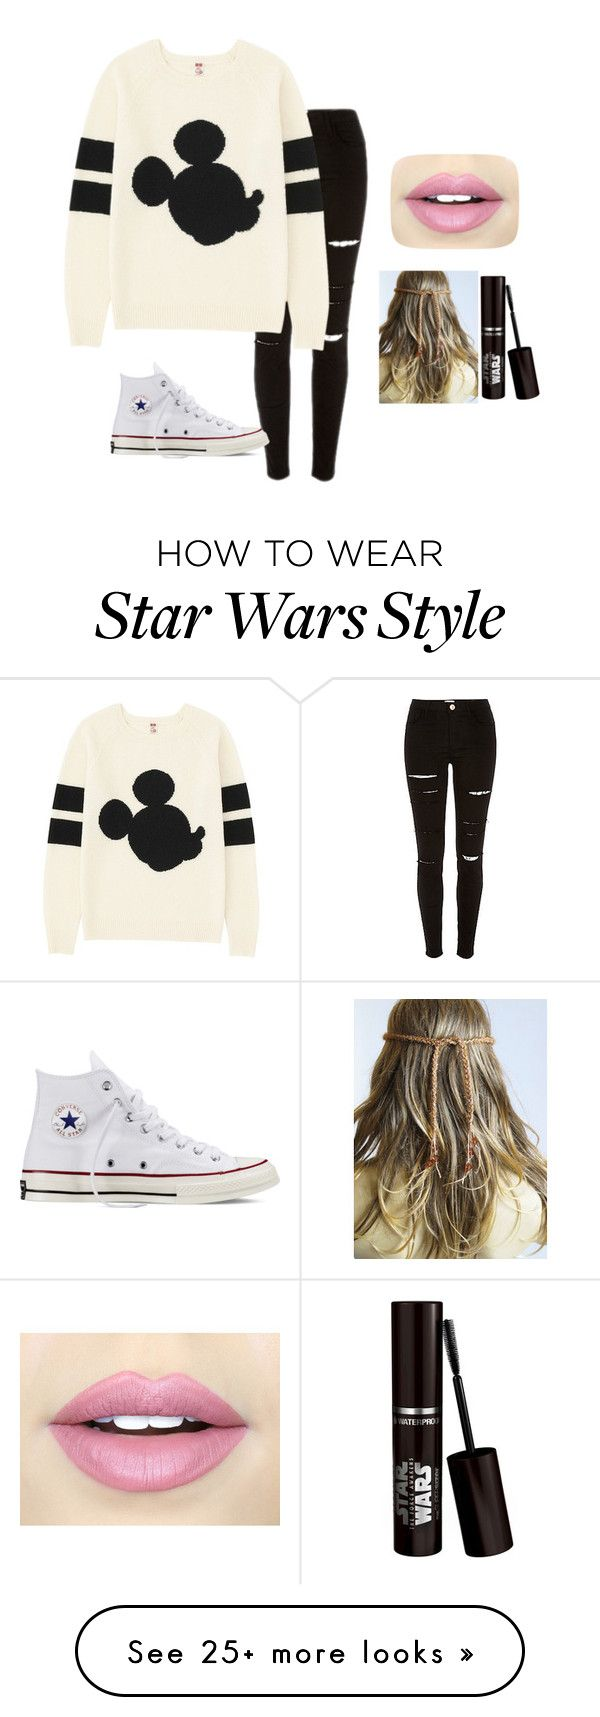 """Untitled #214"" by ambroselove on Polyvore featuring moda, Uniqlo, Converse i Fiebiger"